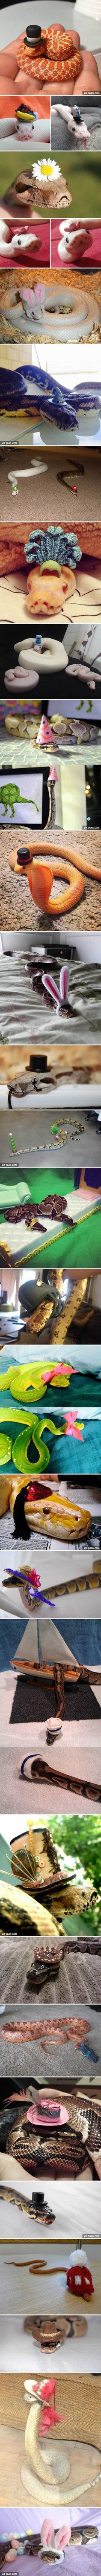 Scared Of Snakes? Put A Hat On It!